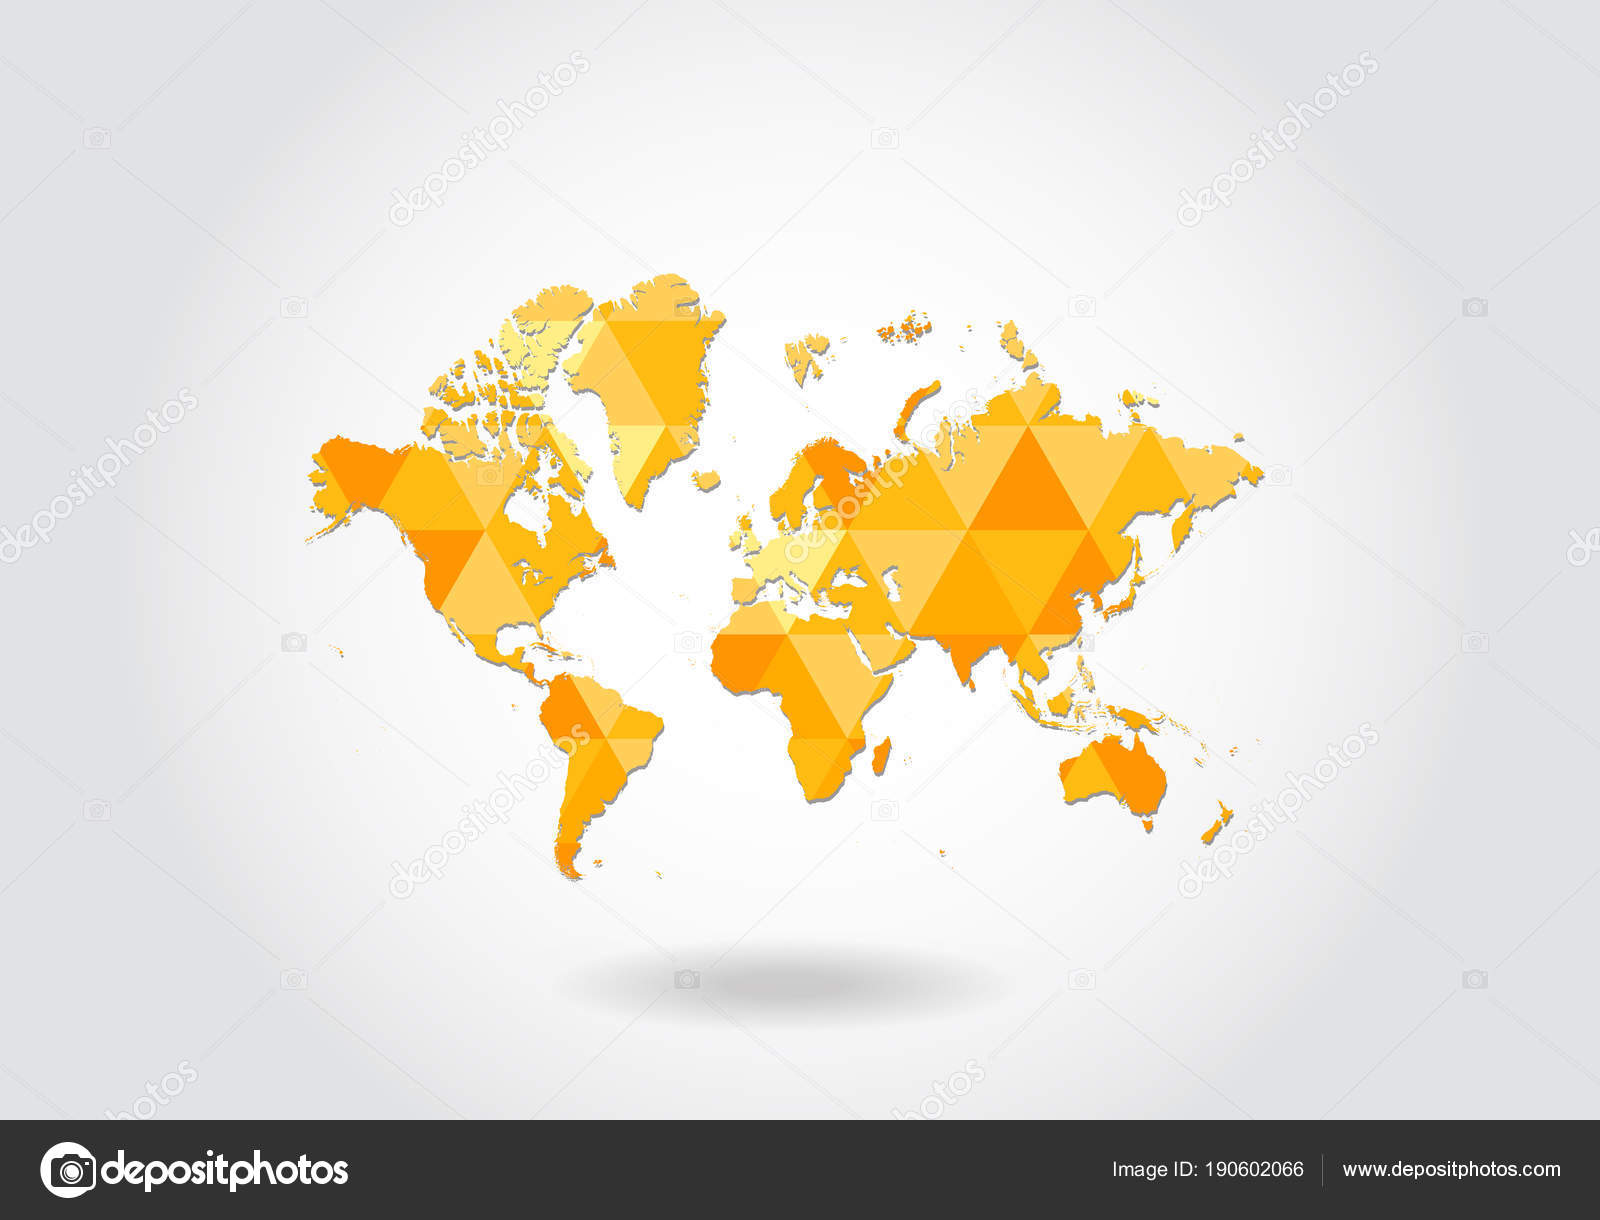 World map geometric polygonal style abstract gems triangle modern world map in geometric polygonal styleabstract gems trianglemodern design background low poly map of world colorful polygonal map shape of world on gumiabroncs Images